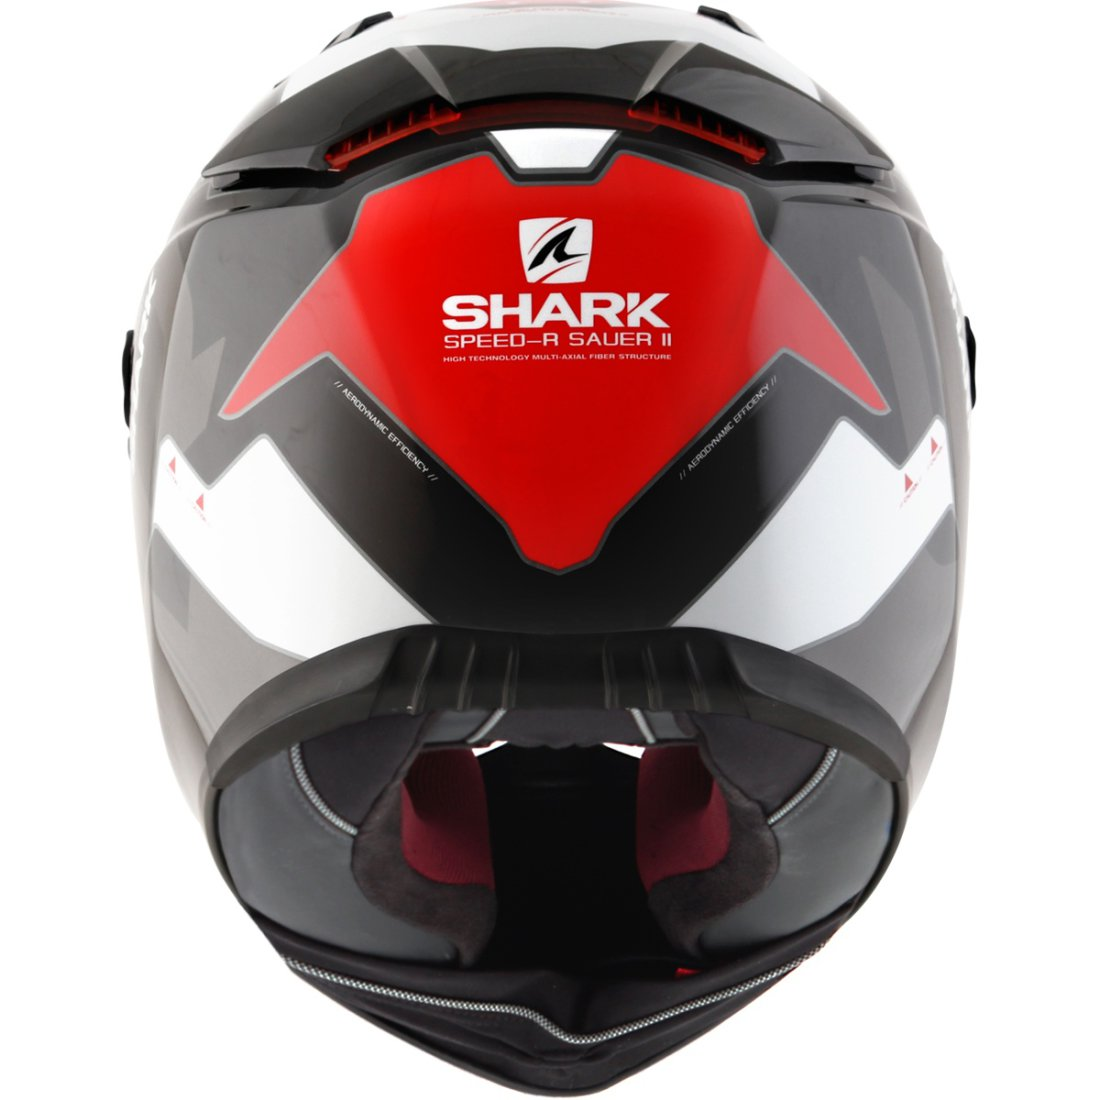 helmet shark speed r series2 sauer ii black red white motocard. Black Bedroom Furniture Sets. Home Design Ideas